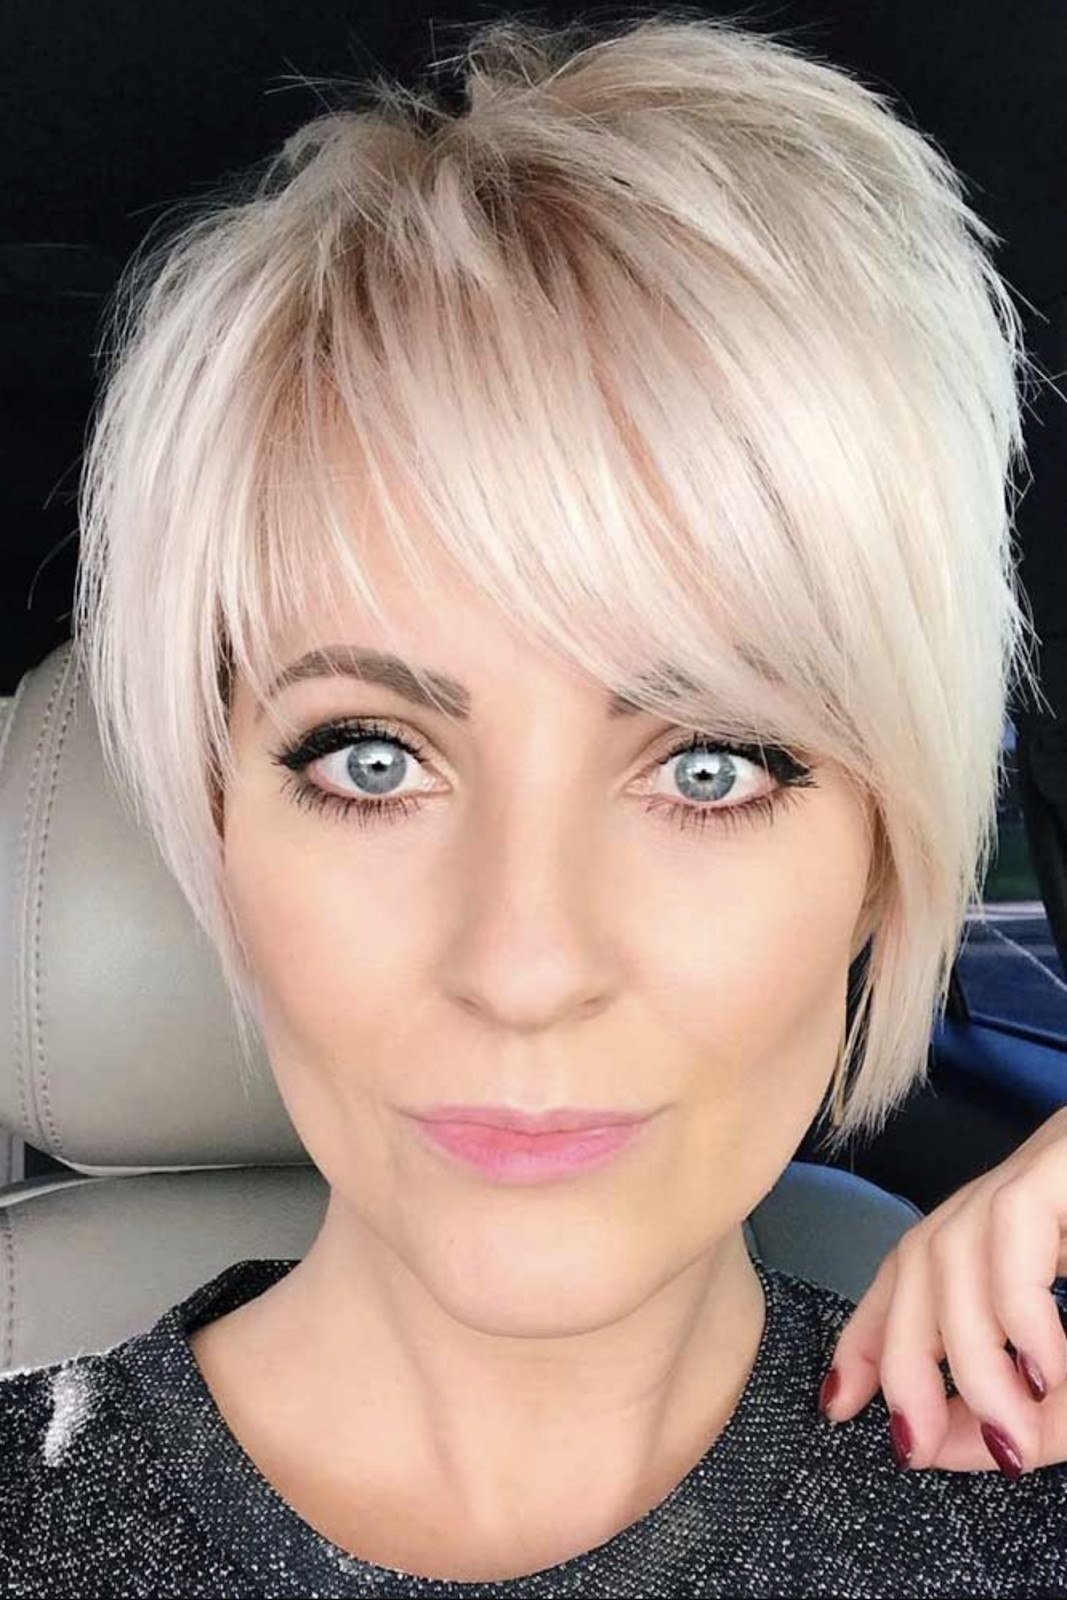 Cool Hairstyles 2020  2019 2020 Short Hairstyles for Women Over 50 That Are